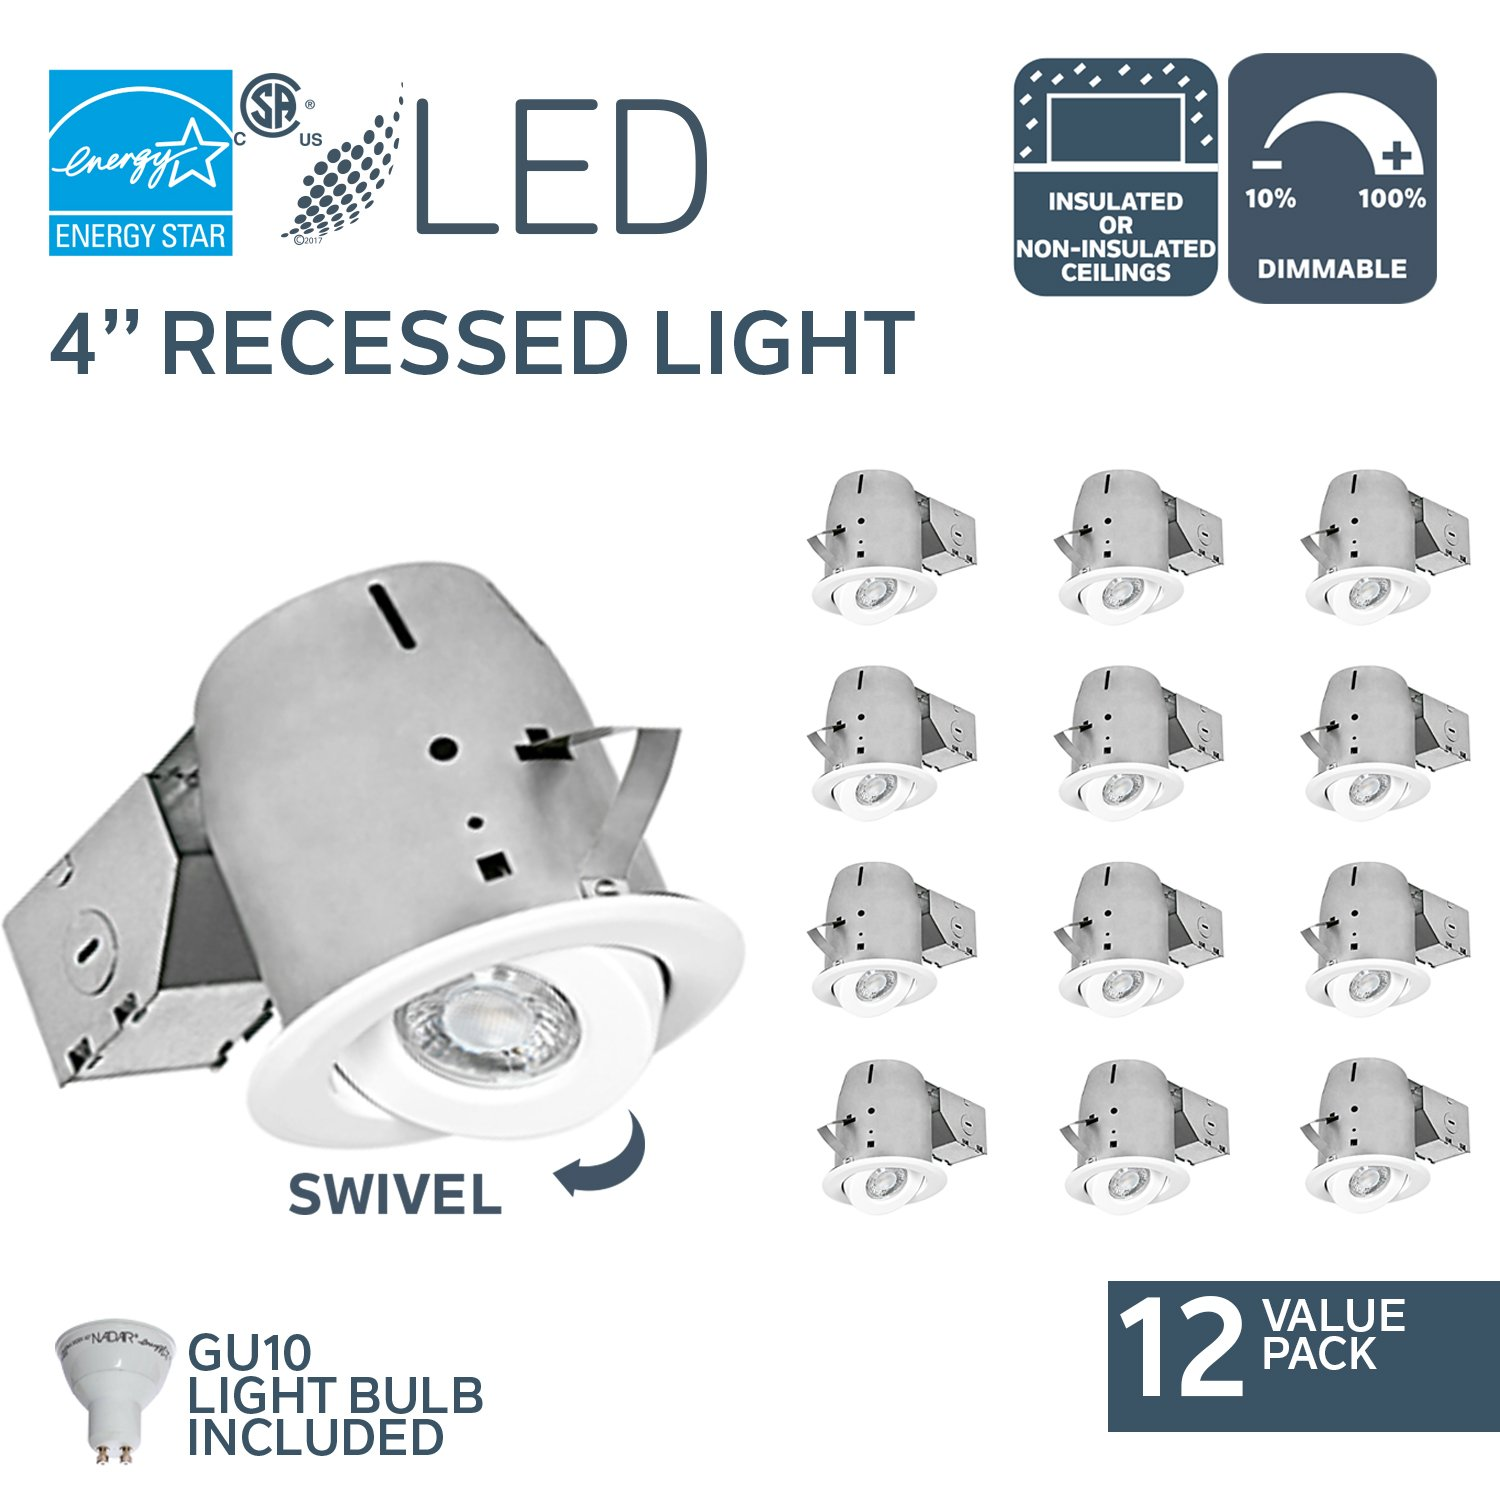 Nadair Swivel Dimmable Downlight Spotlight Recessed Light Energy Star Complete Kit,12 x LED Gu10 550 Lumens Bulb (50W Equivalent) Included, Ic Rated, Warm White, 4'', Pack - CP378L-GU12WH